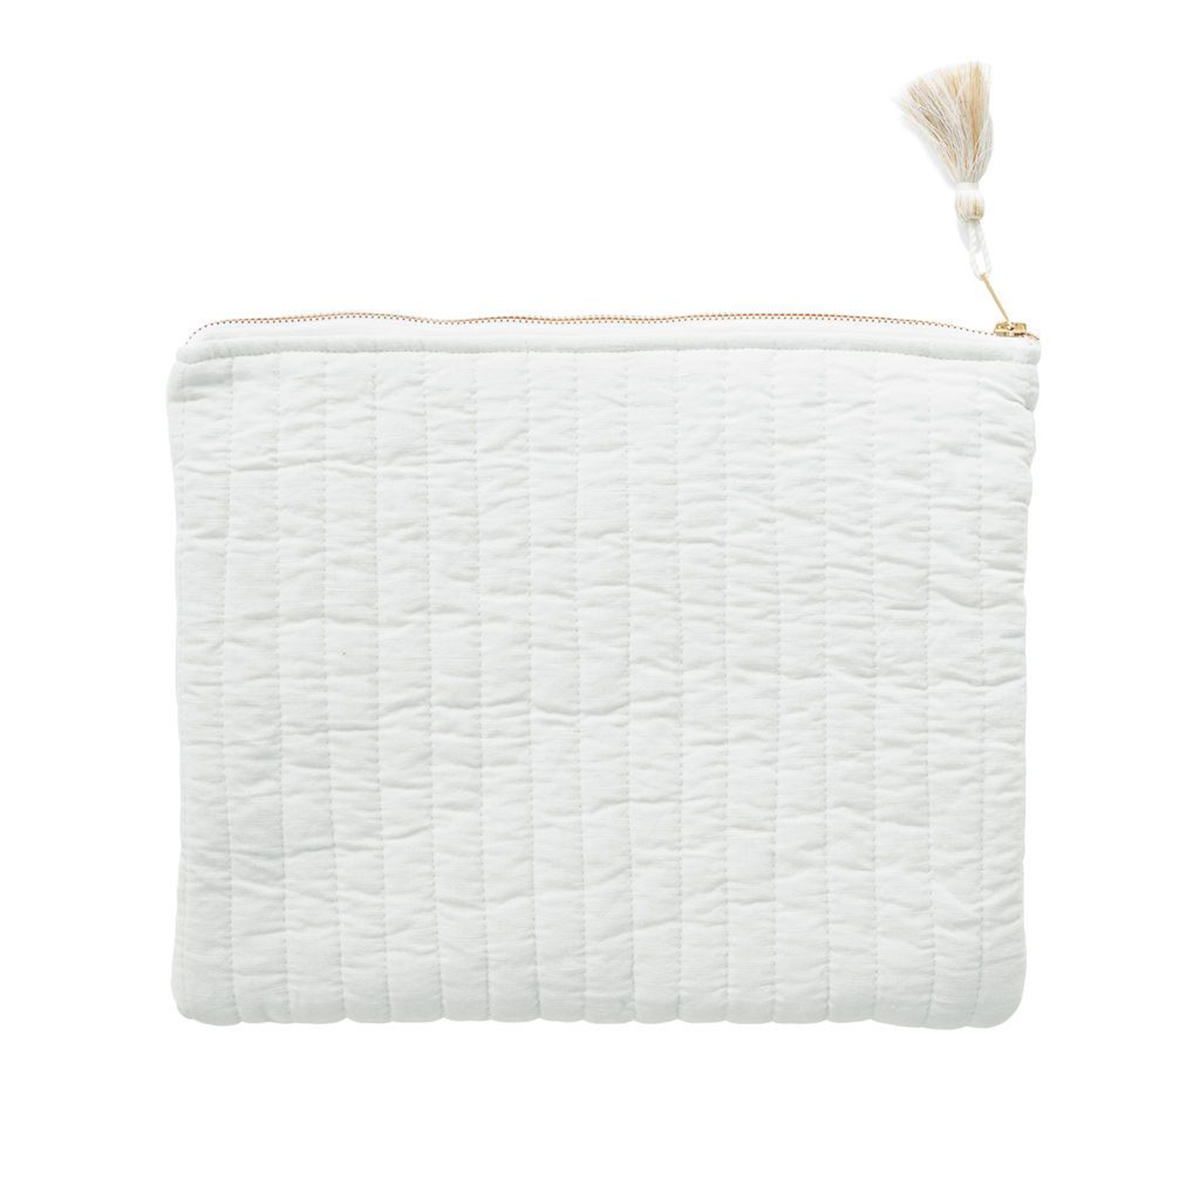 Louelle Linene Pouch French Grey